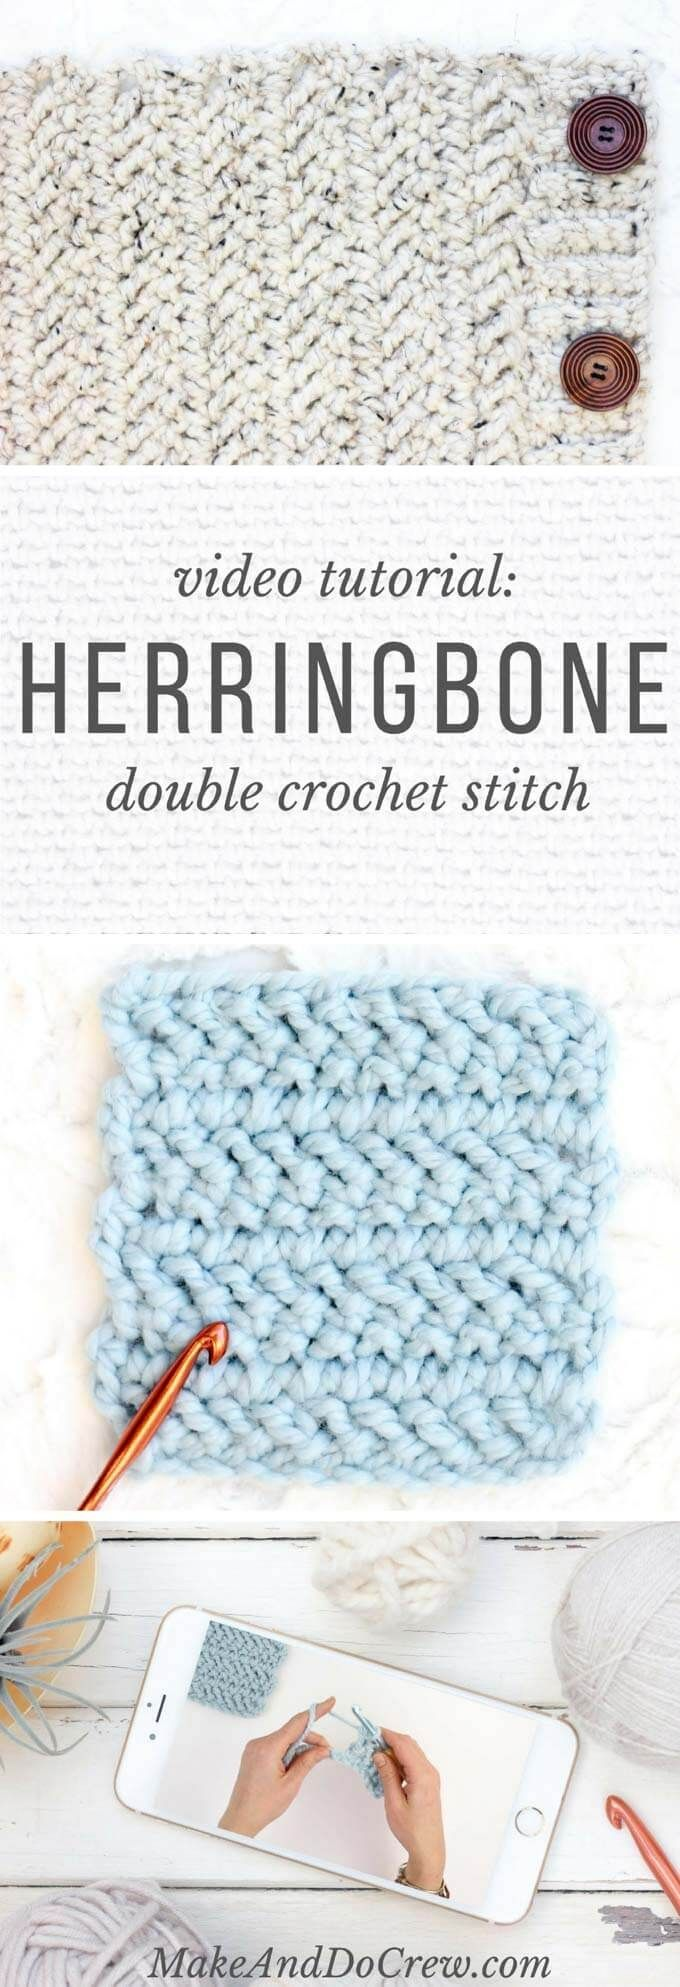 Learn How To Crochet The Herringbone Double Crochet Stitch In This Video  Tutorial A Great